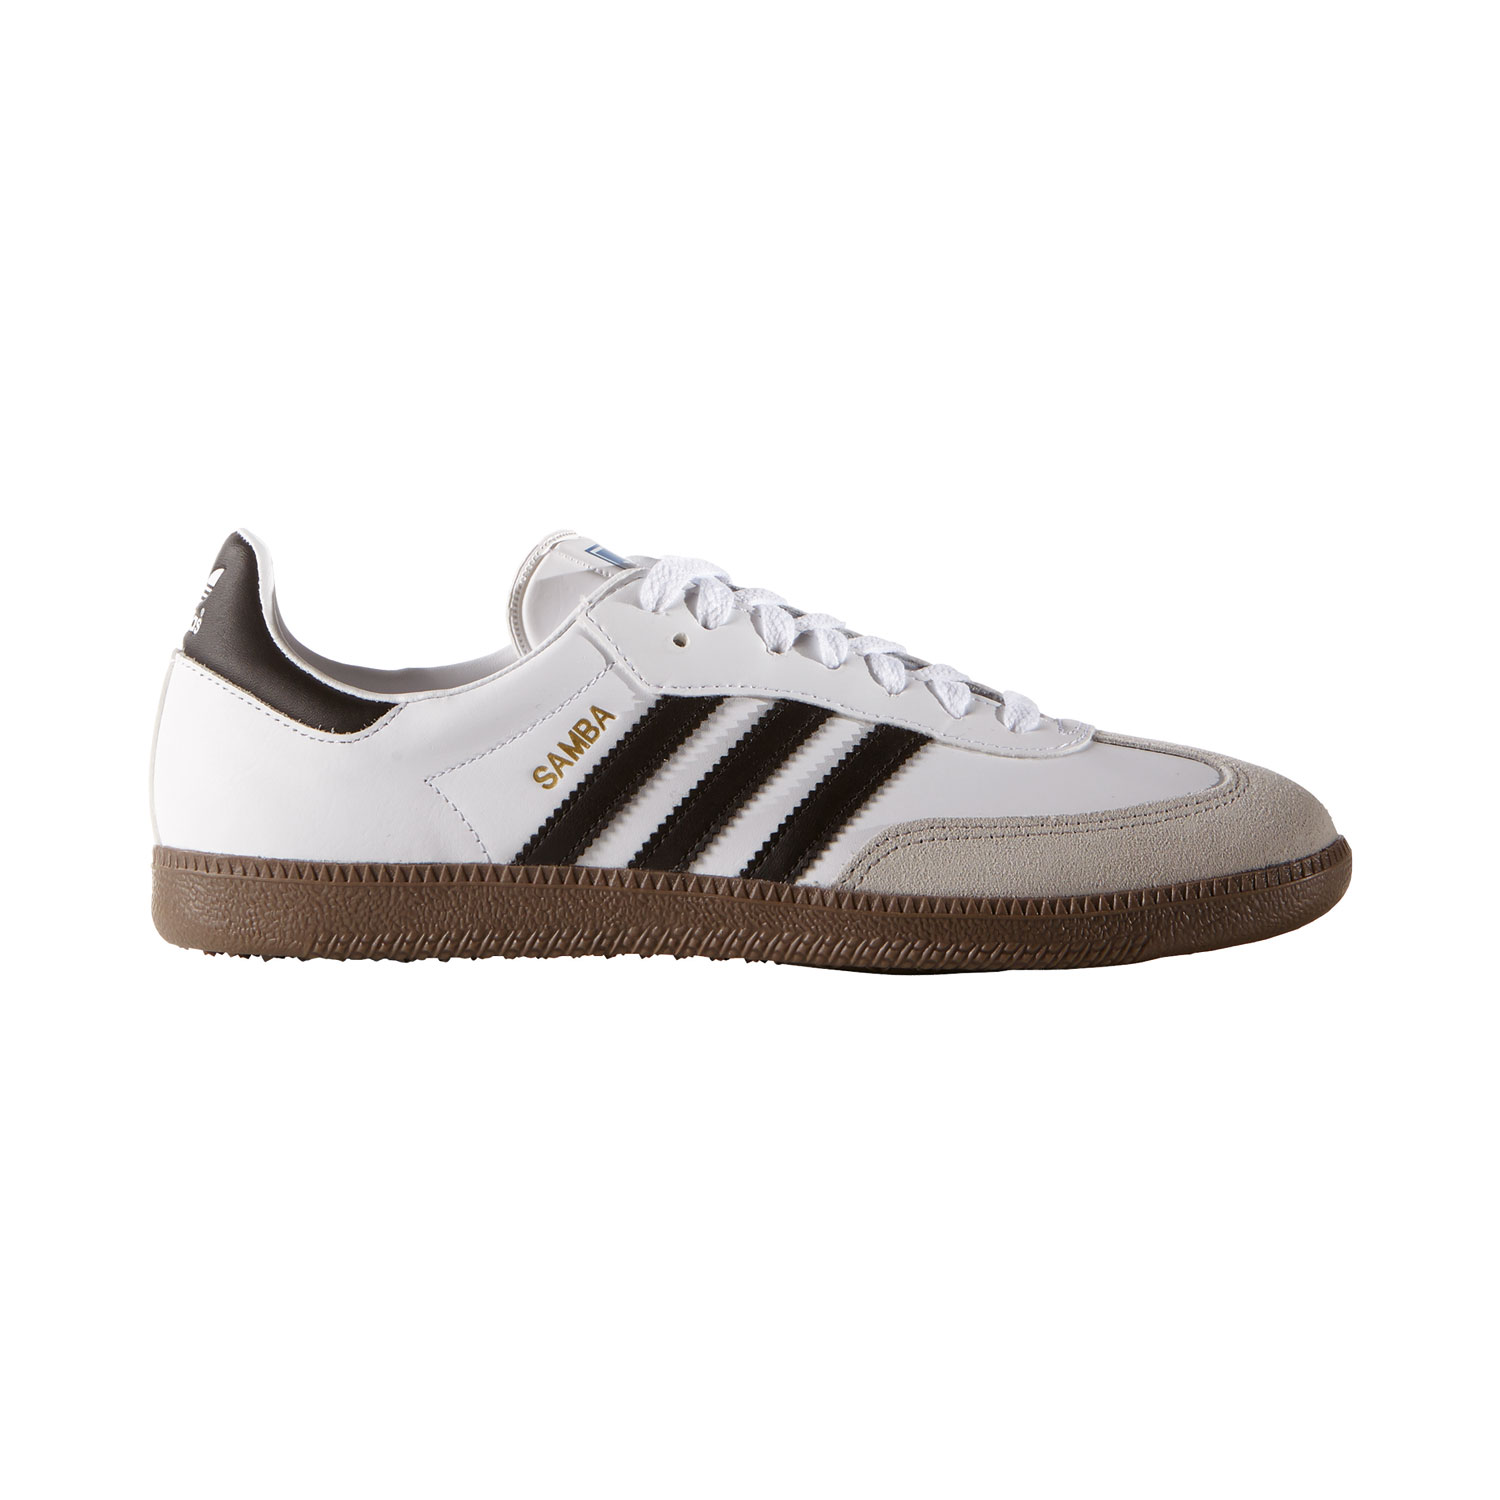 adidas samba herren sneaker ebay. Black Bedroom Furniture Sets. Home Design Ideas